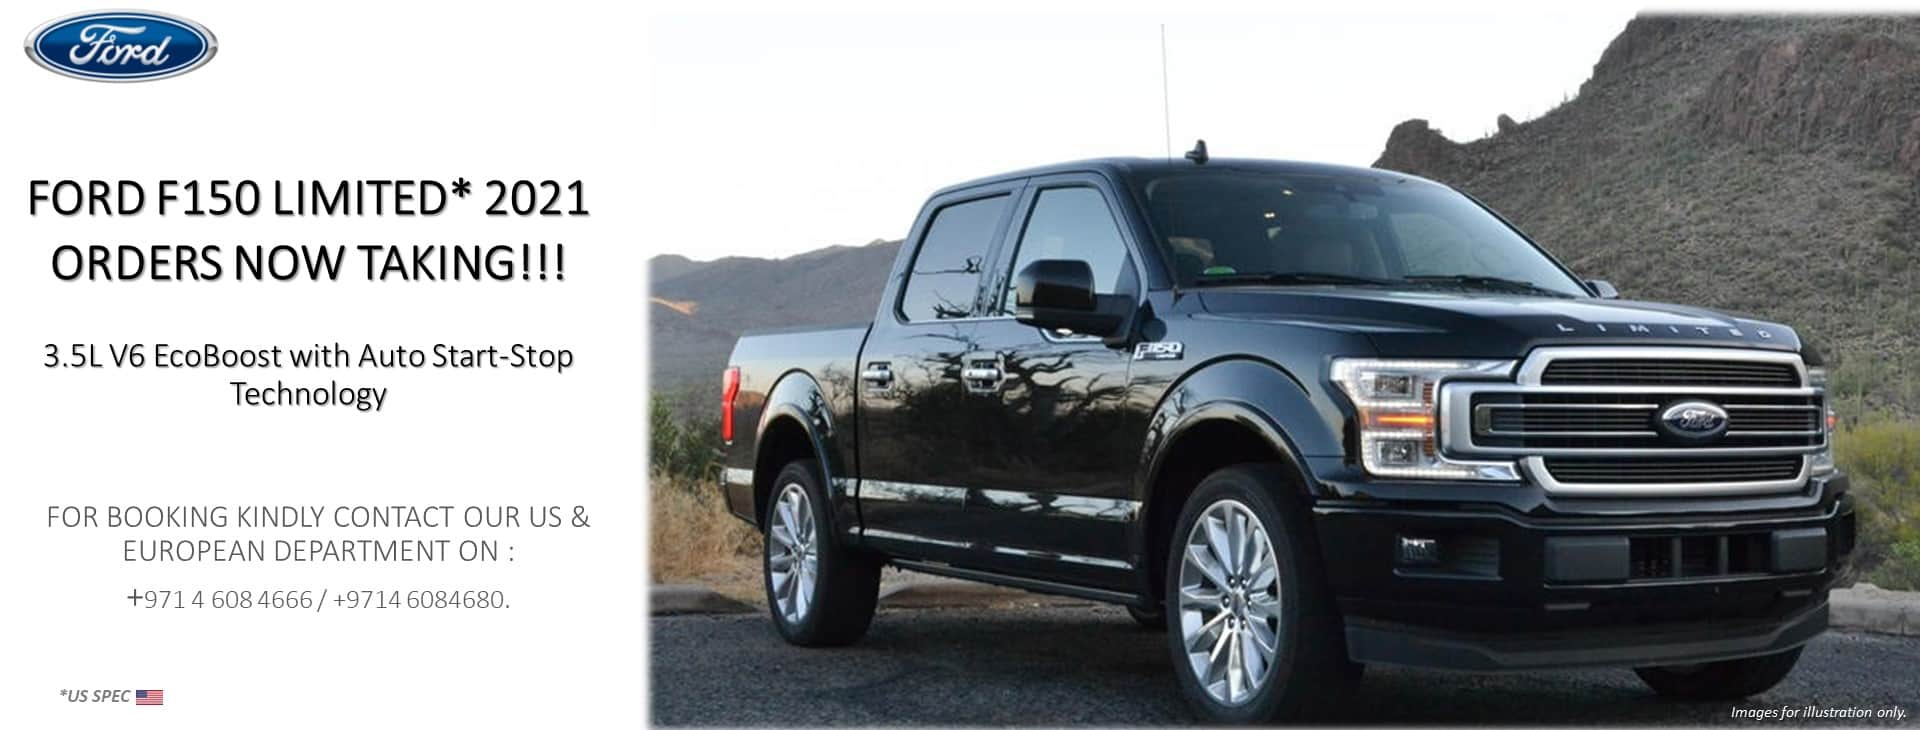 Ford F150_2021